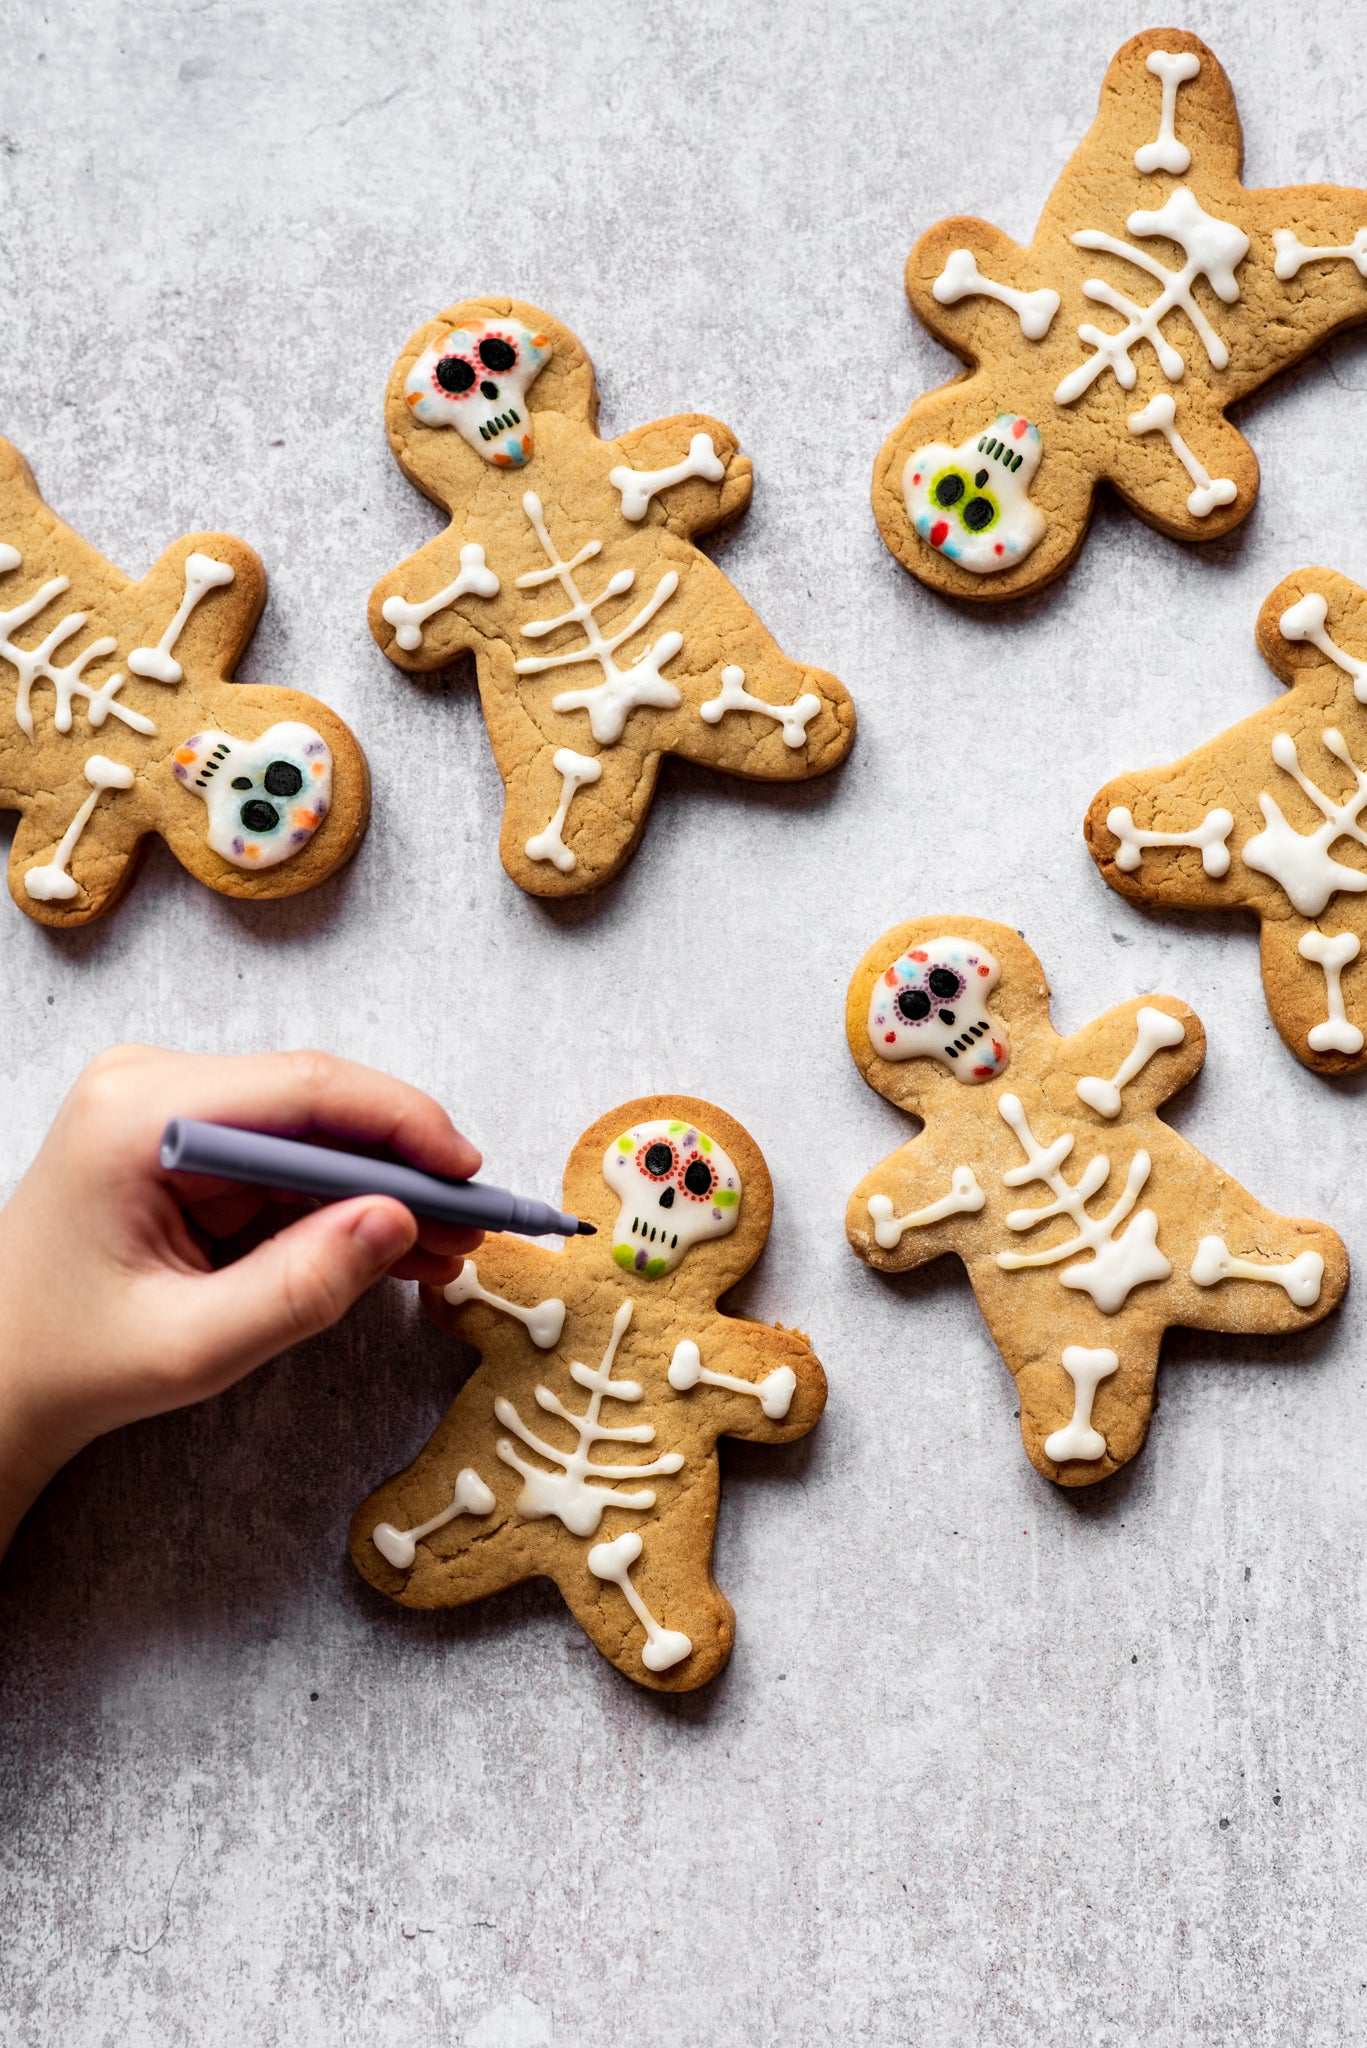 Day-Of-The-Dead-Gingerbread-Biscuits-WEB-RES-5.jpg